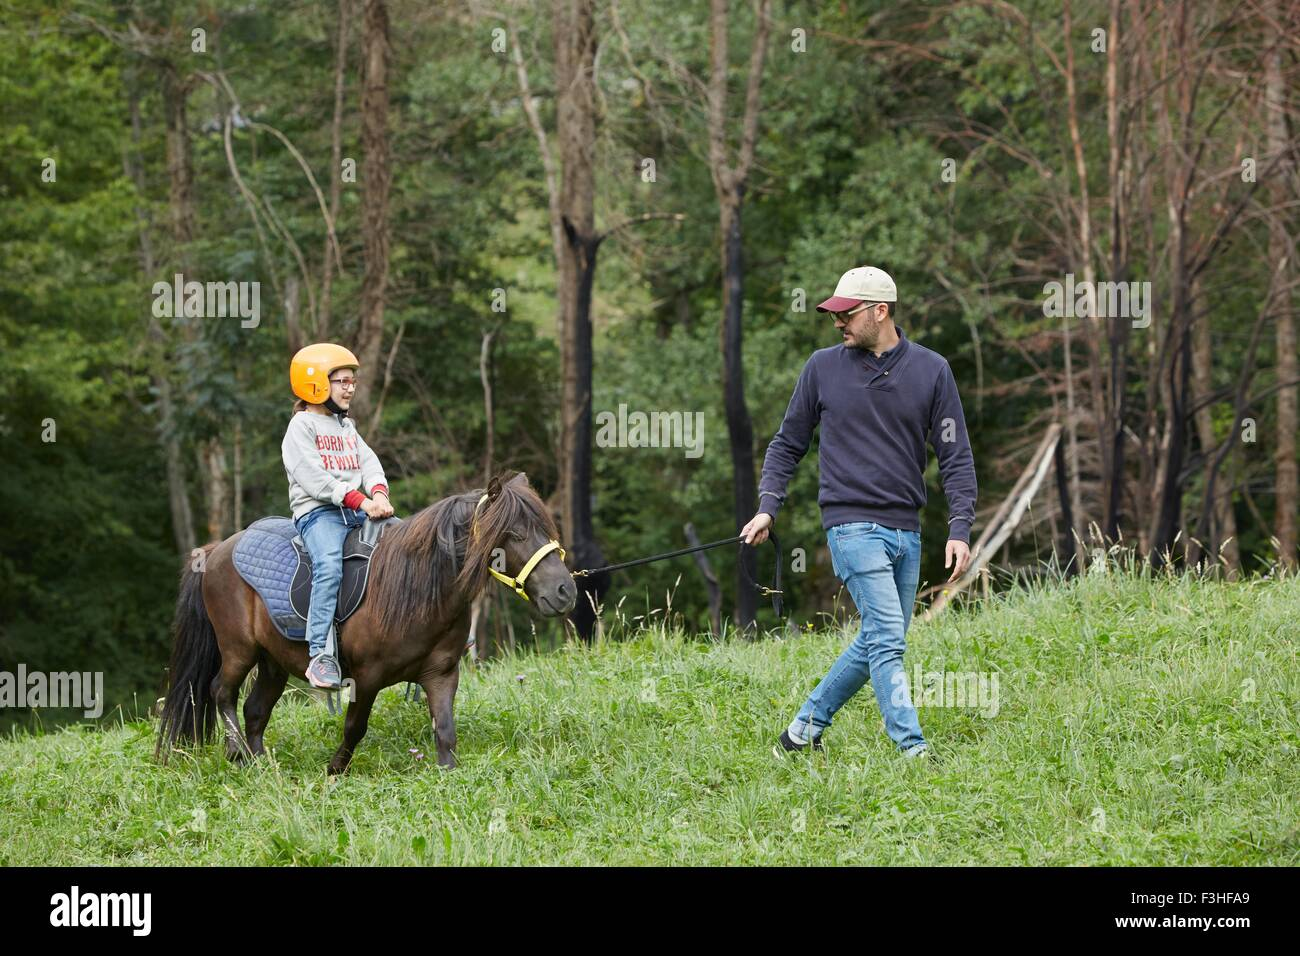 Father with daughter riding pony, Valle de Aran, Spain - Stock Image